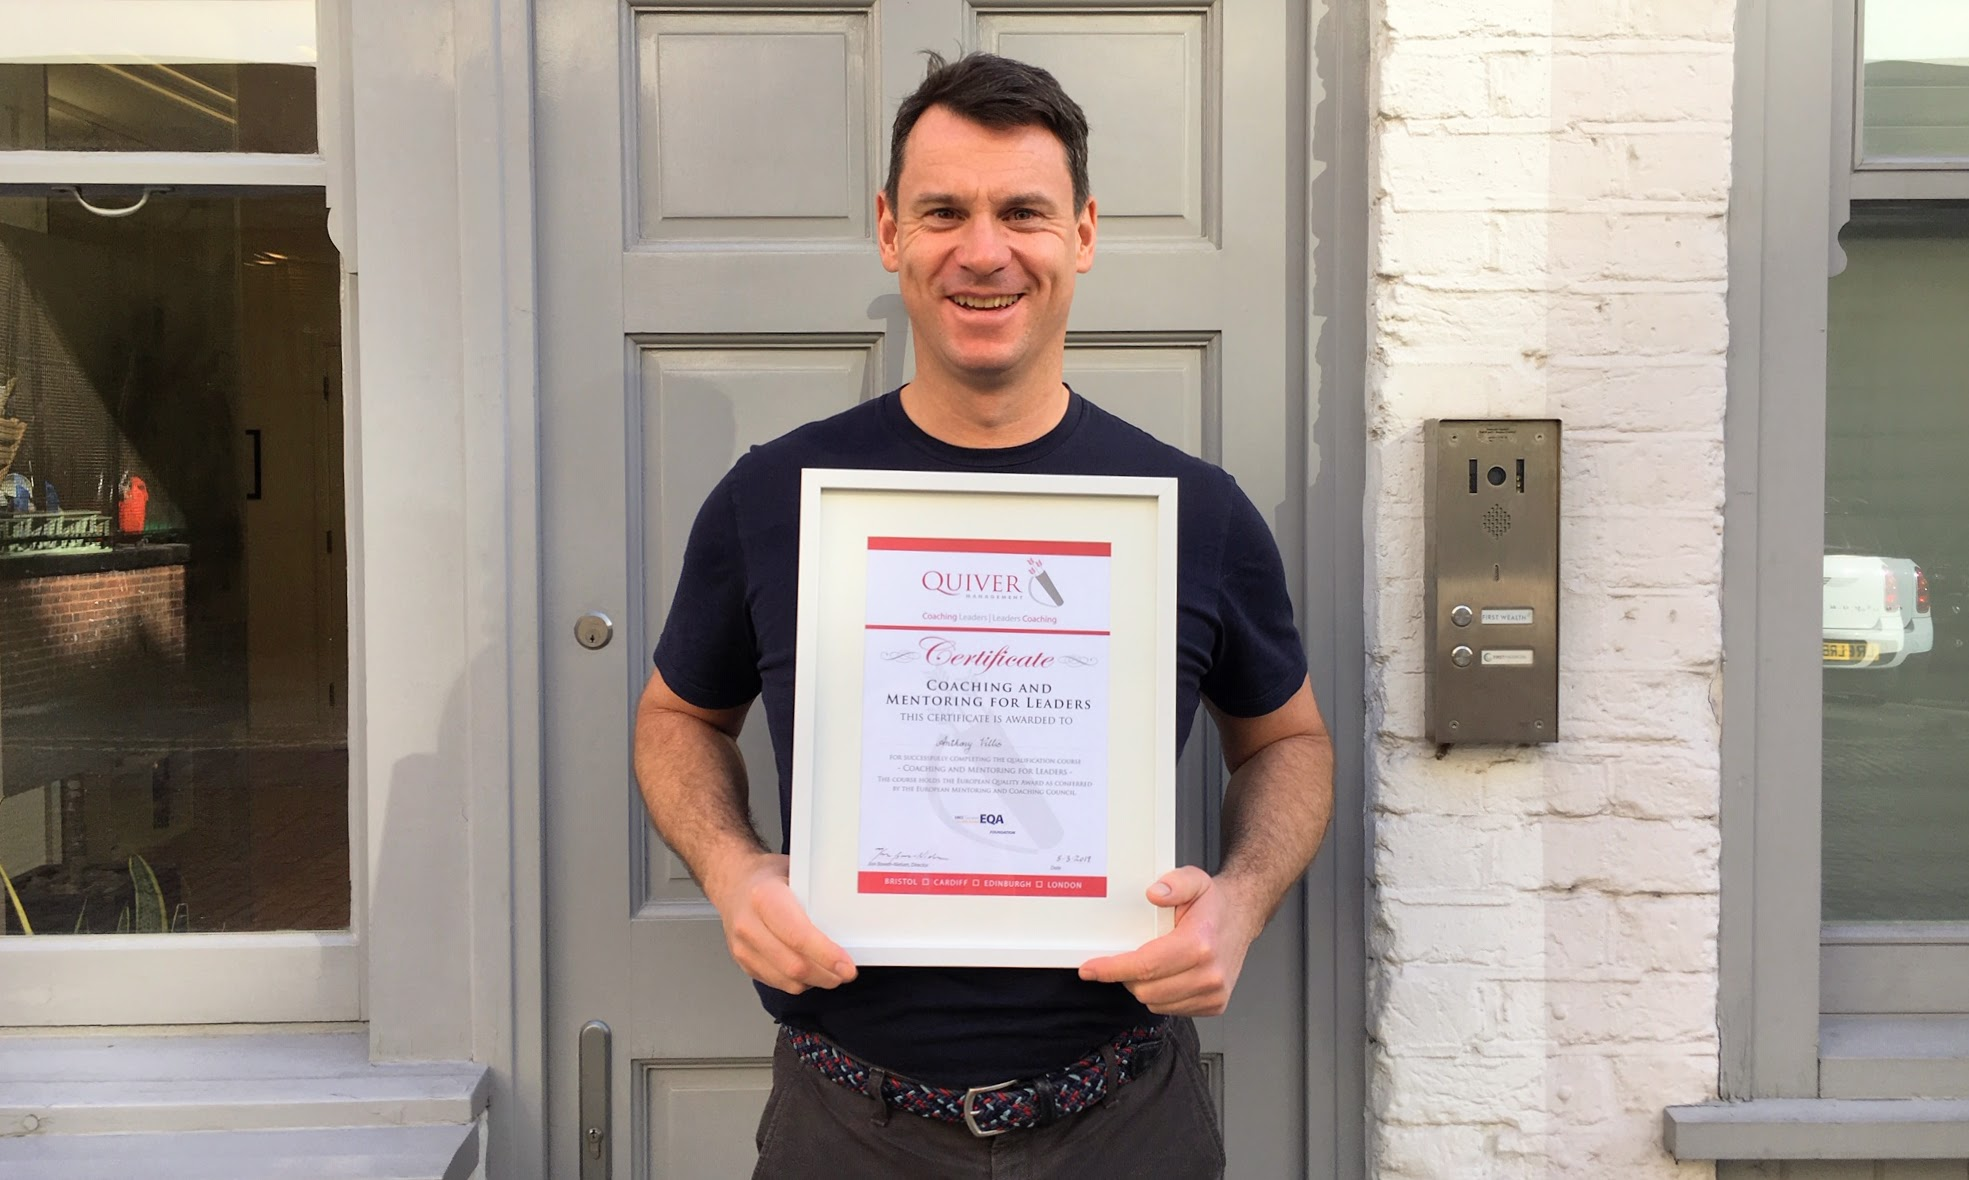 Anthony with his certificate